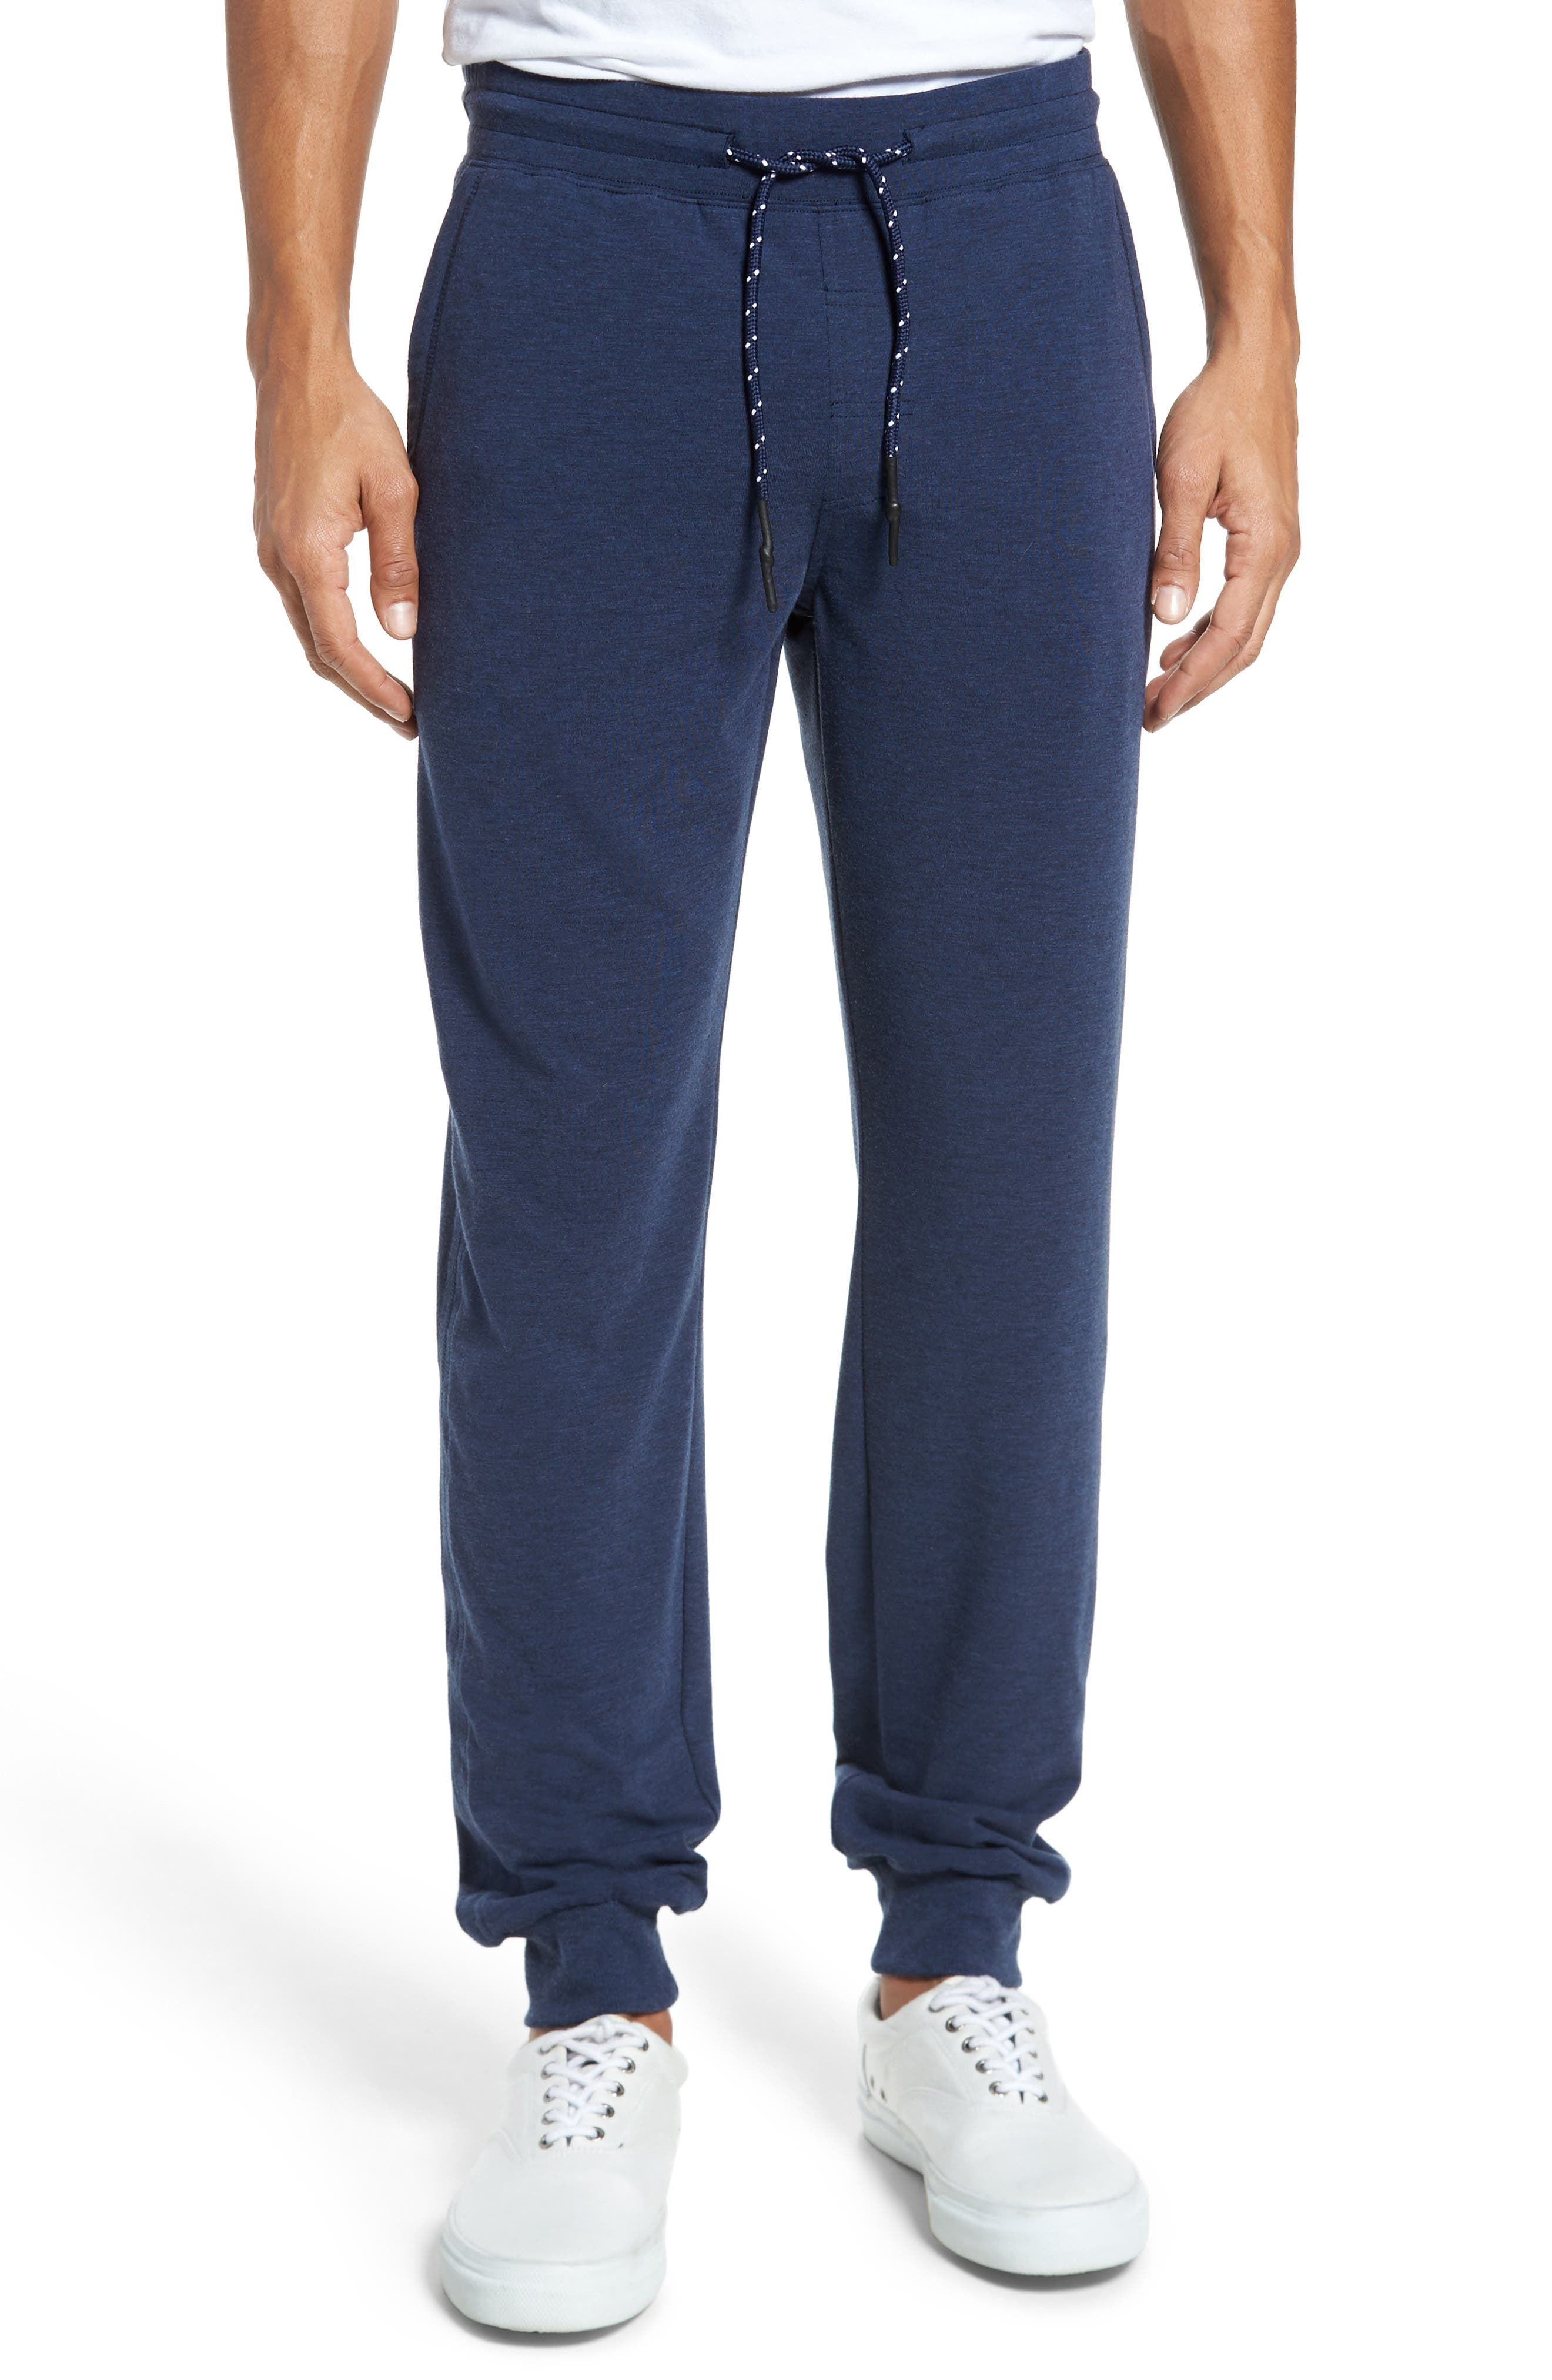 Brushback Fleece Jogger Pants,                         Main,                         color, Navy Heather